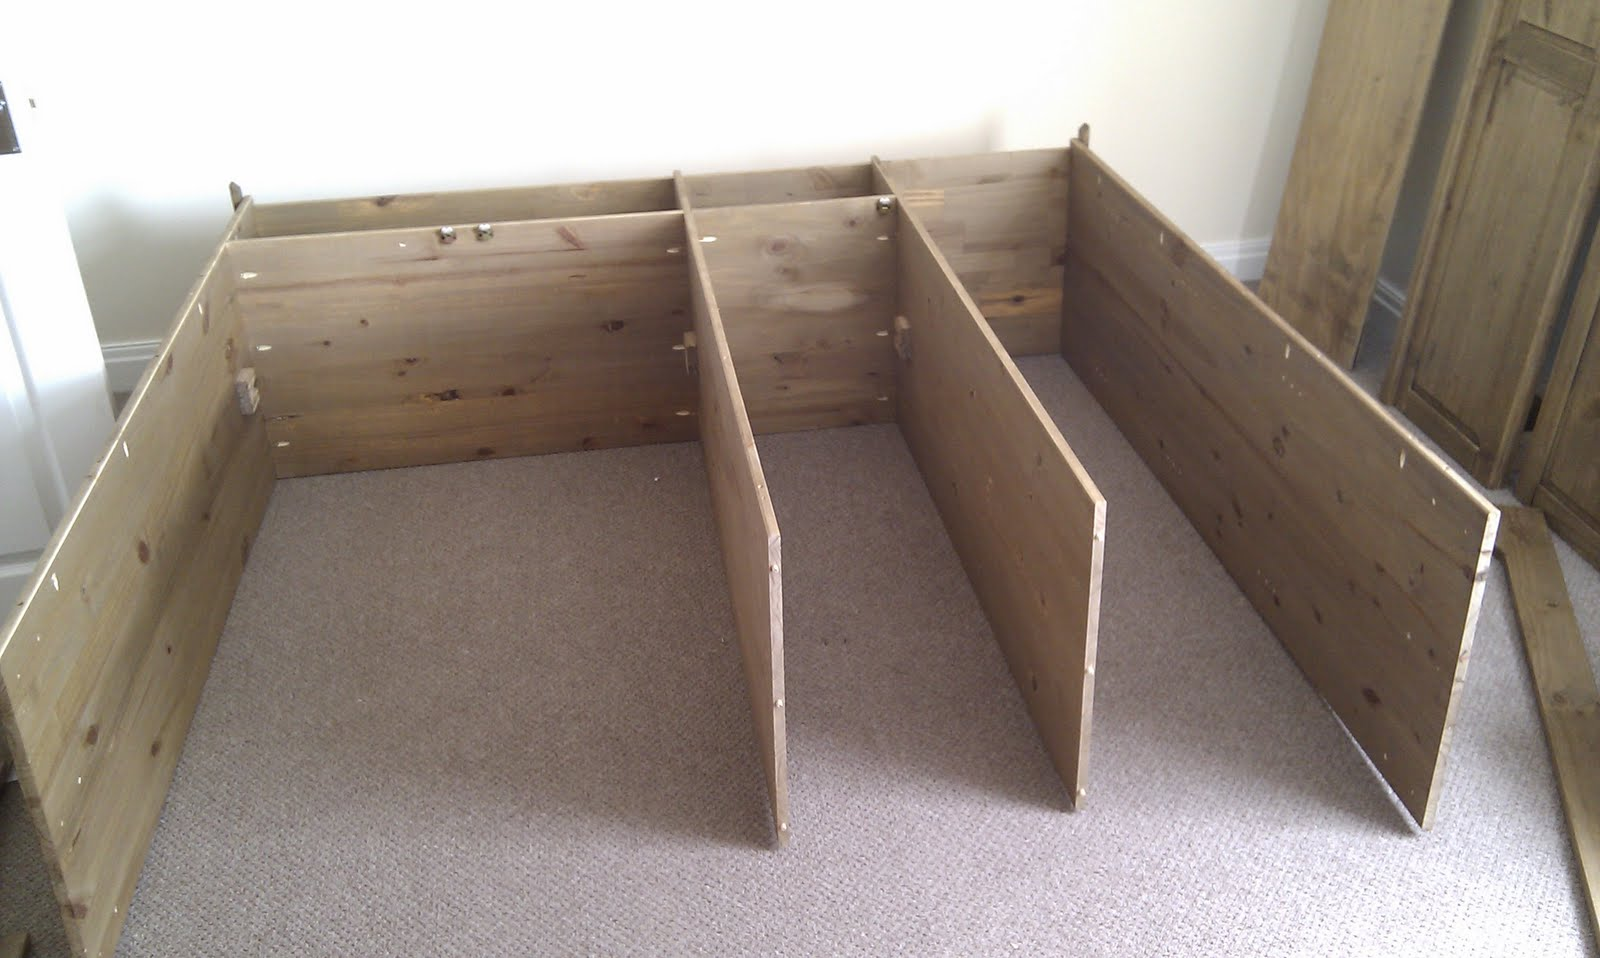 Attrayant First You Need Plenty Of Floor Space As It Needs To Be Built On Its Back.  2.5 Metre Square At The Very Least. You Start With The 2 Sides And The 2 ...